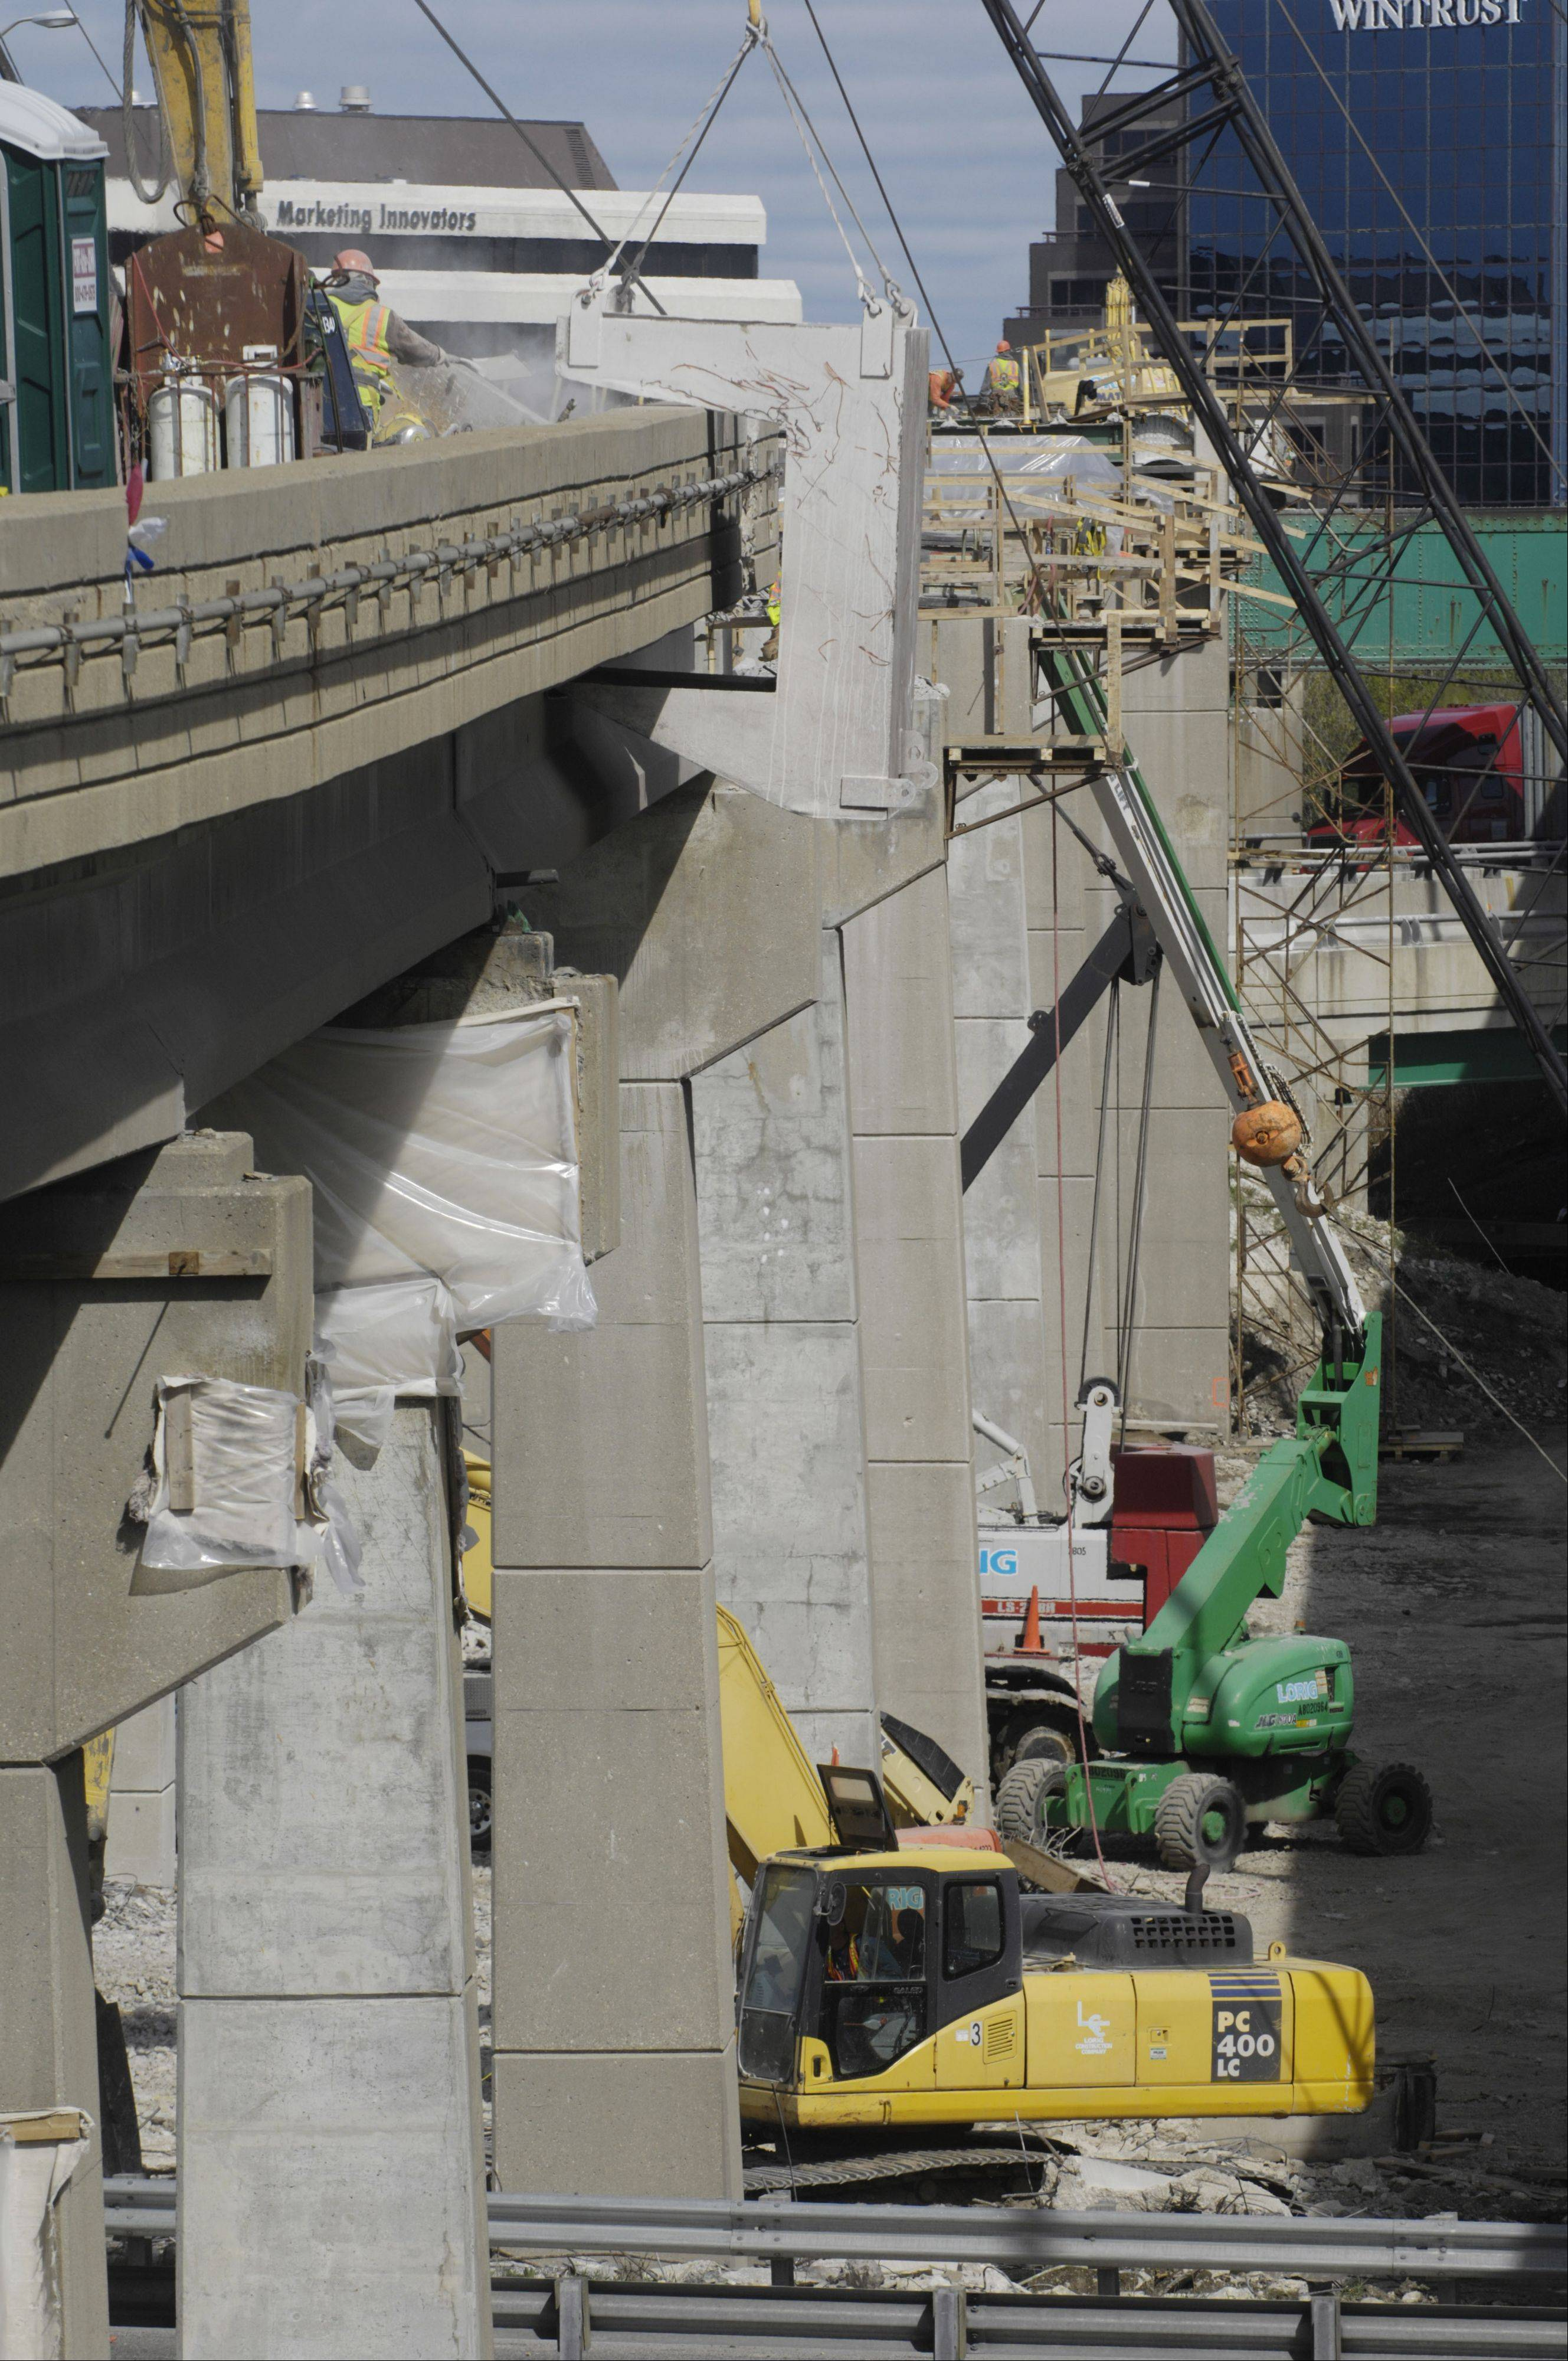 The deck of the existing tri-level bridge connecting northbound I-294 to westbound I-90 is being removed during reconstruction of the roadway.